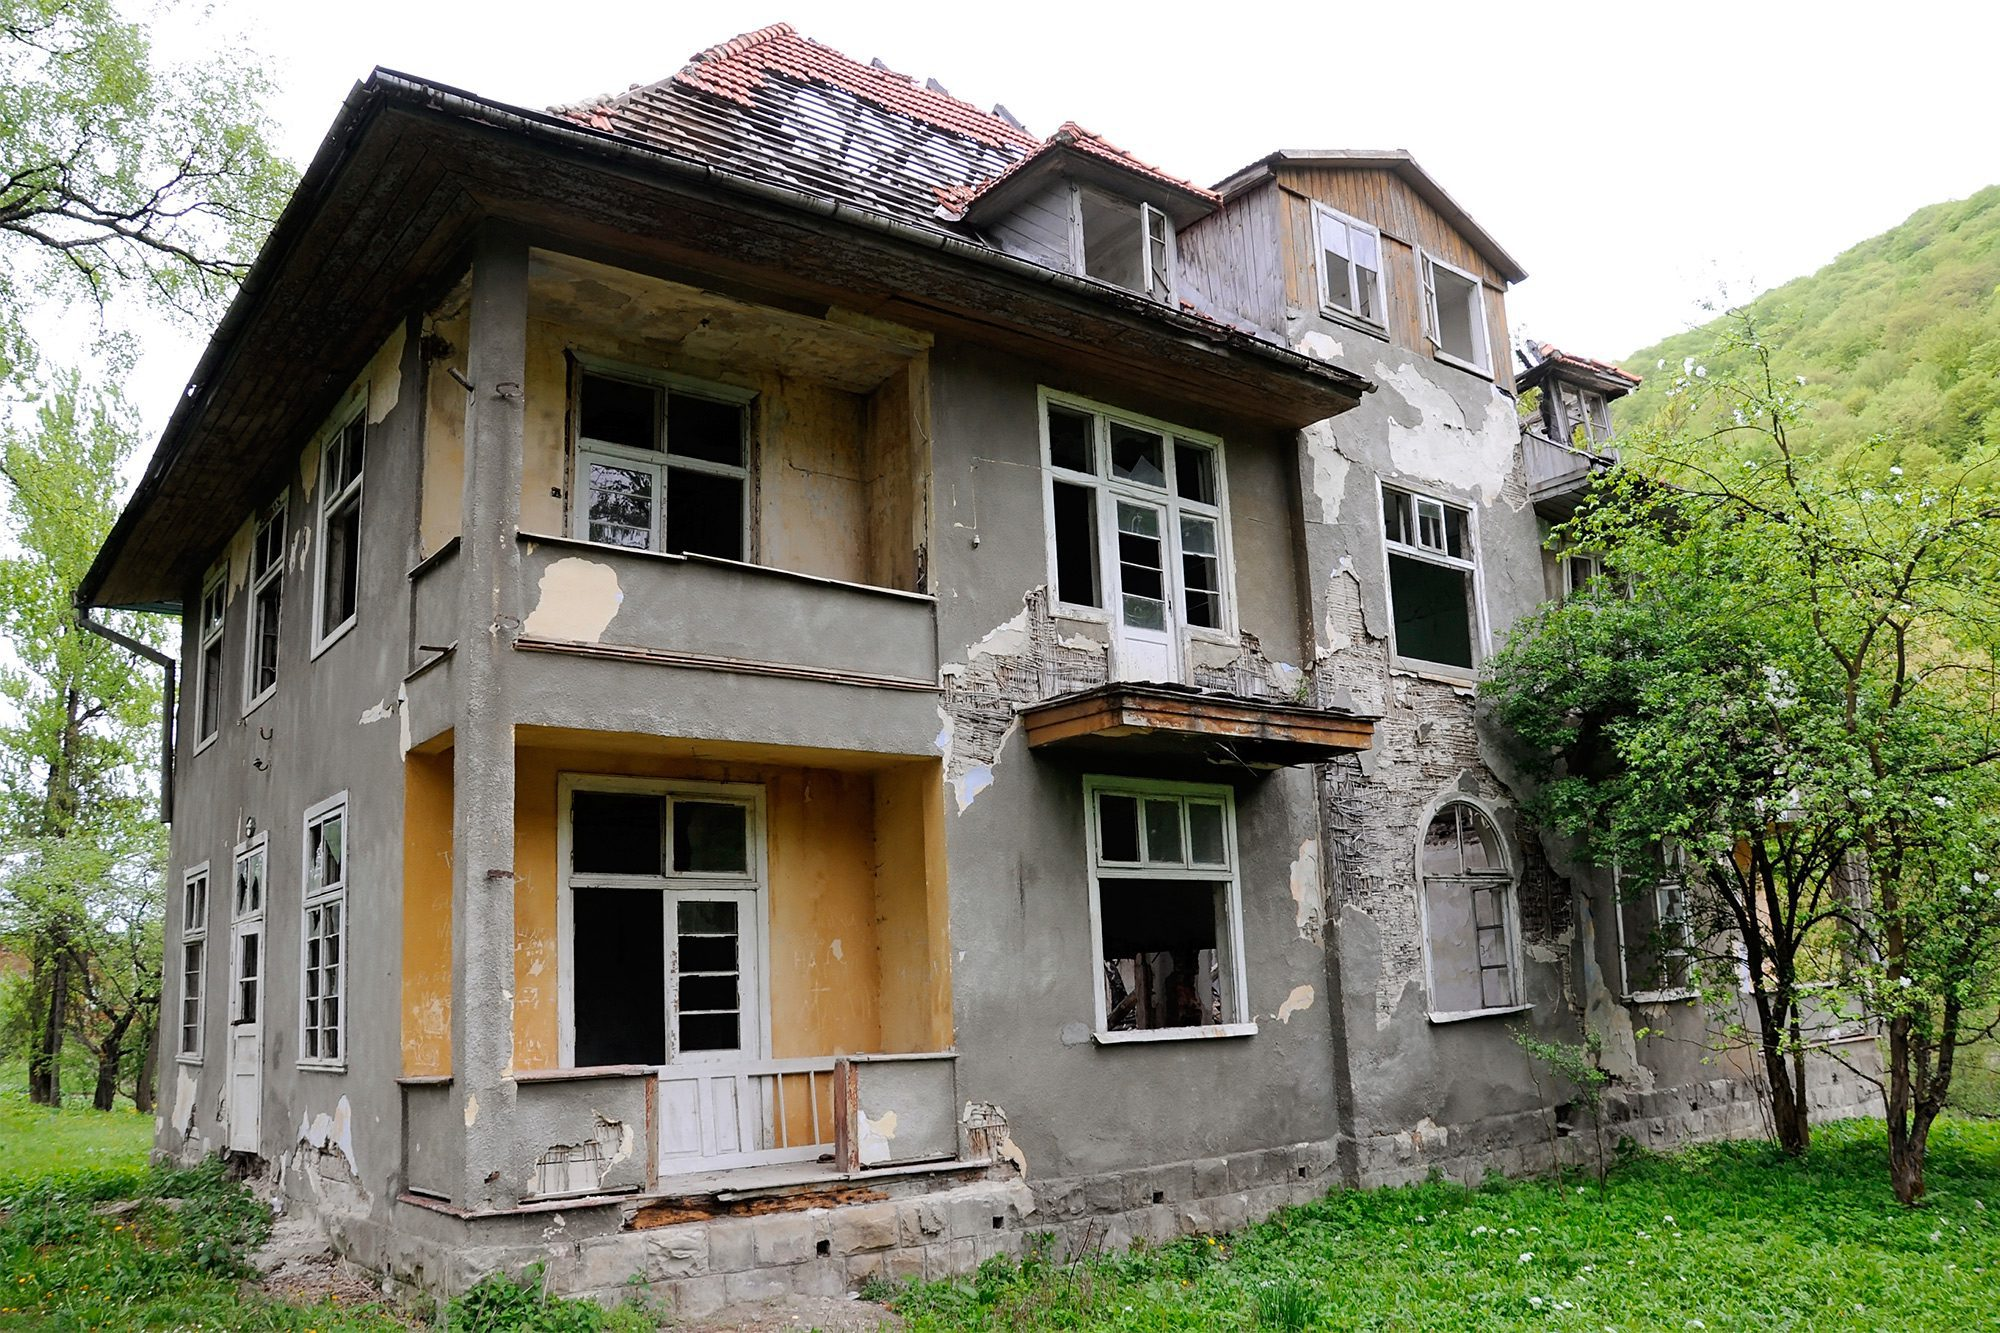 Altes Haus Sanieren Kosten Before You Buy A Fixer-upper, Read This | Realtor.com®